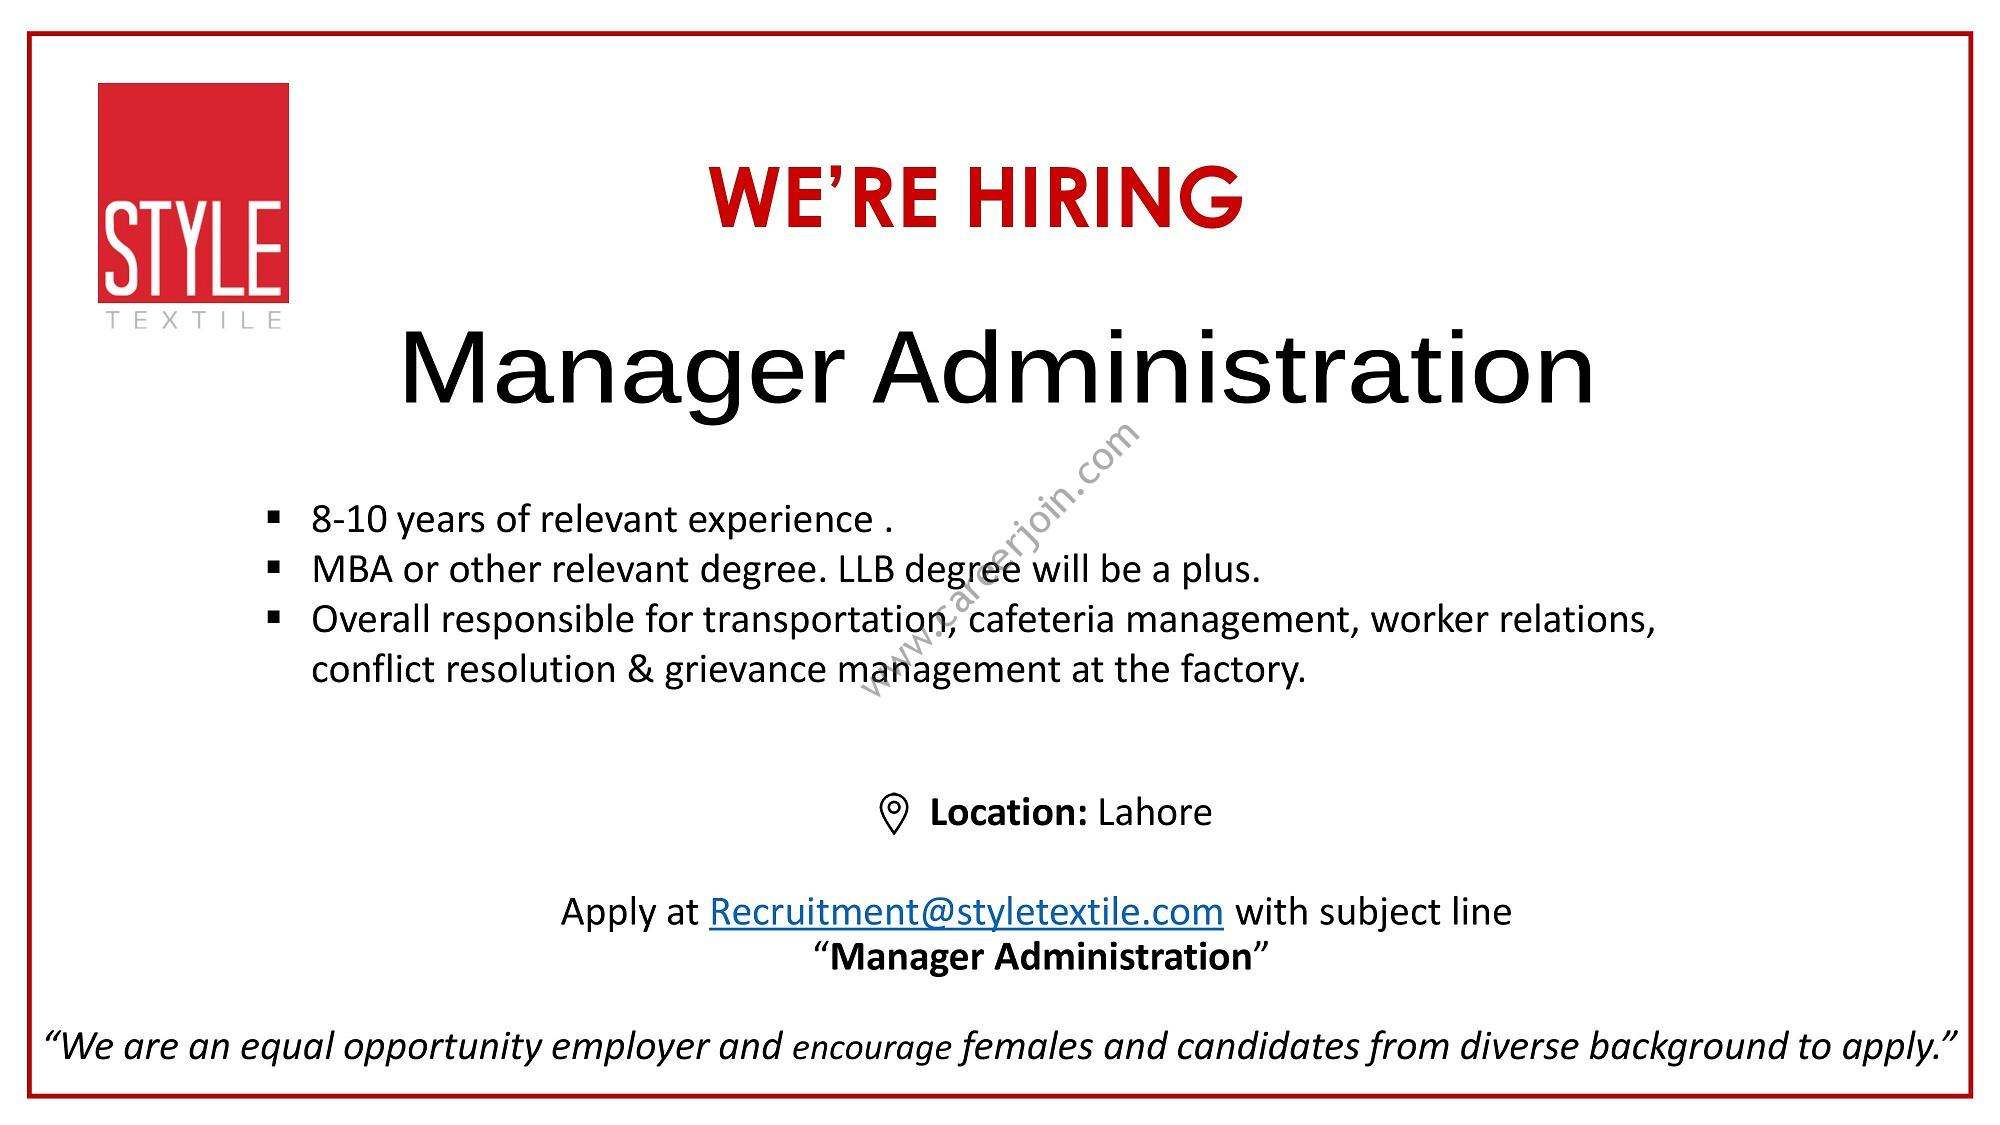 Style Textile Private Limited Jobs Manager Administration